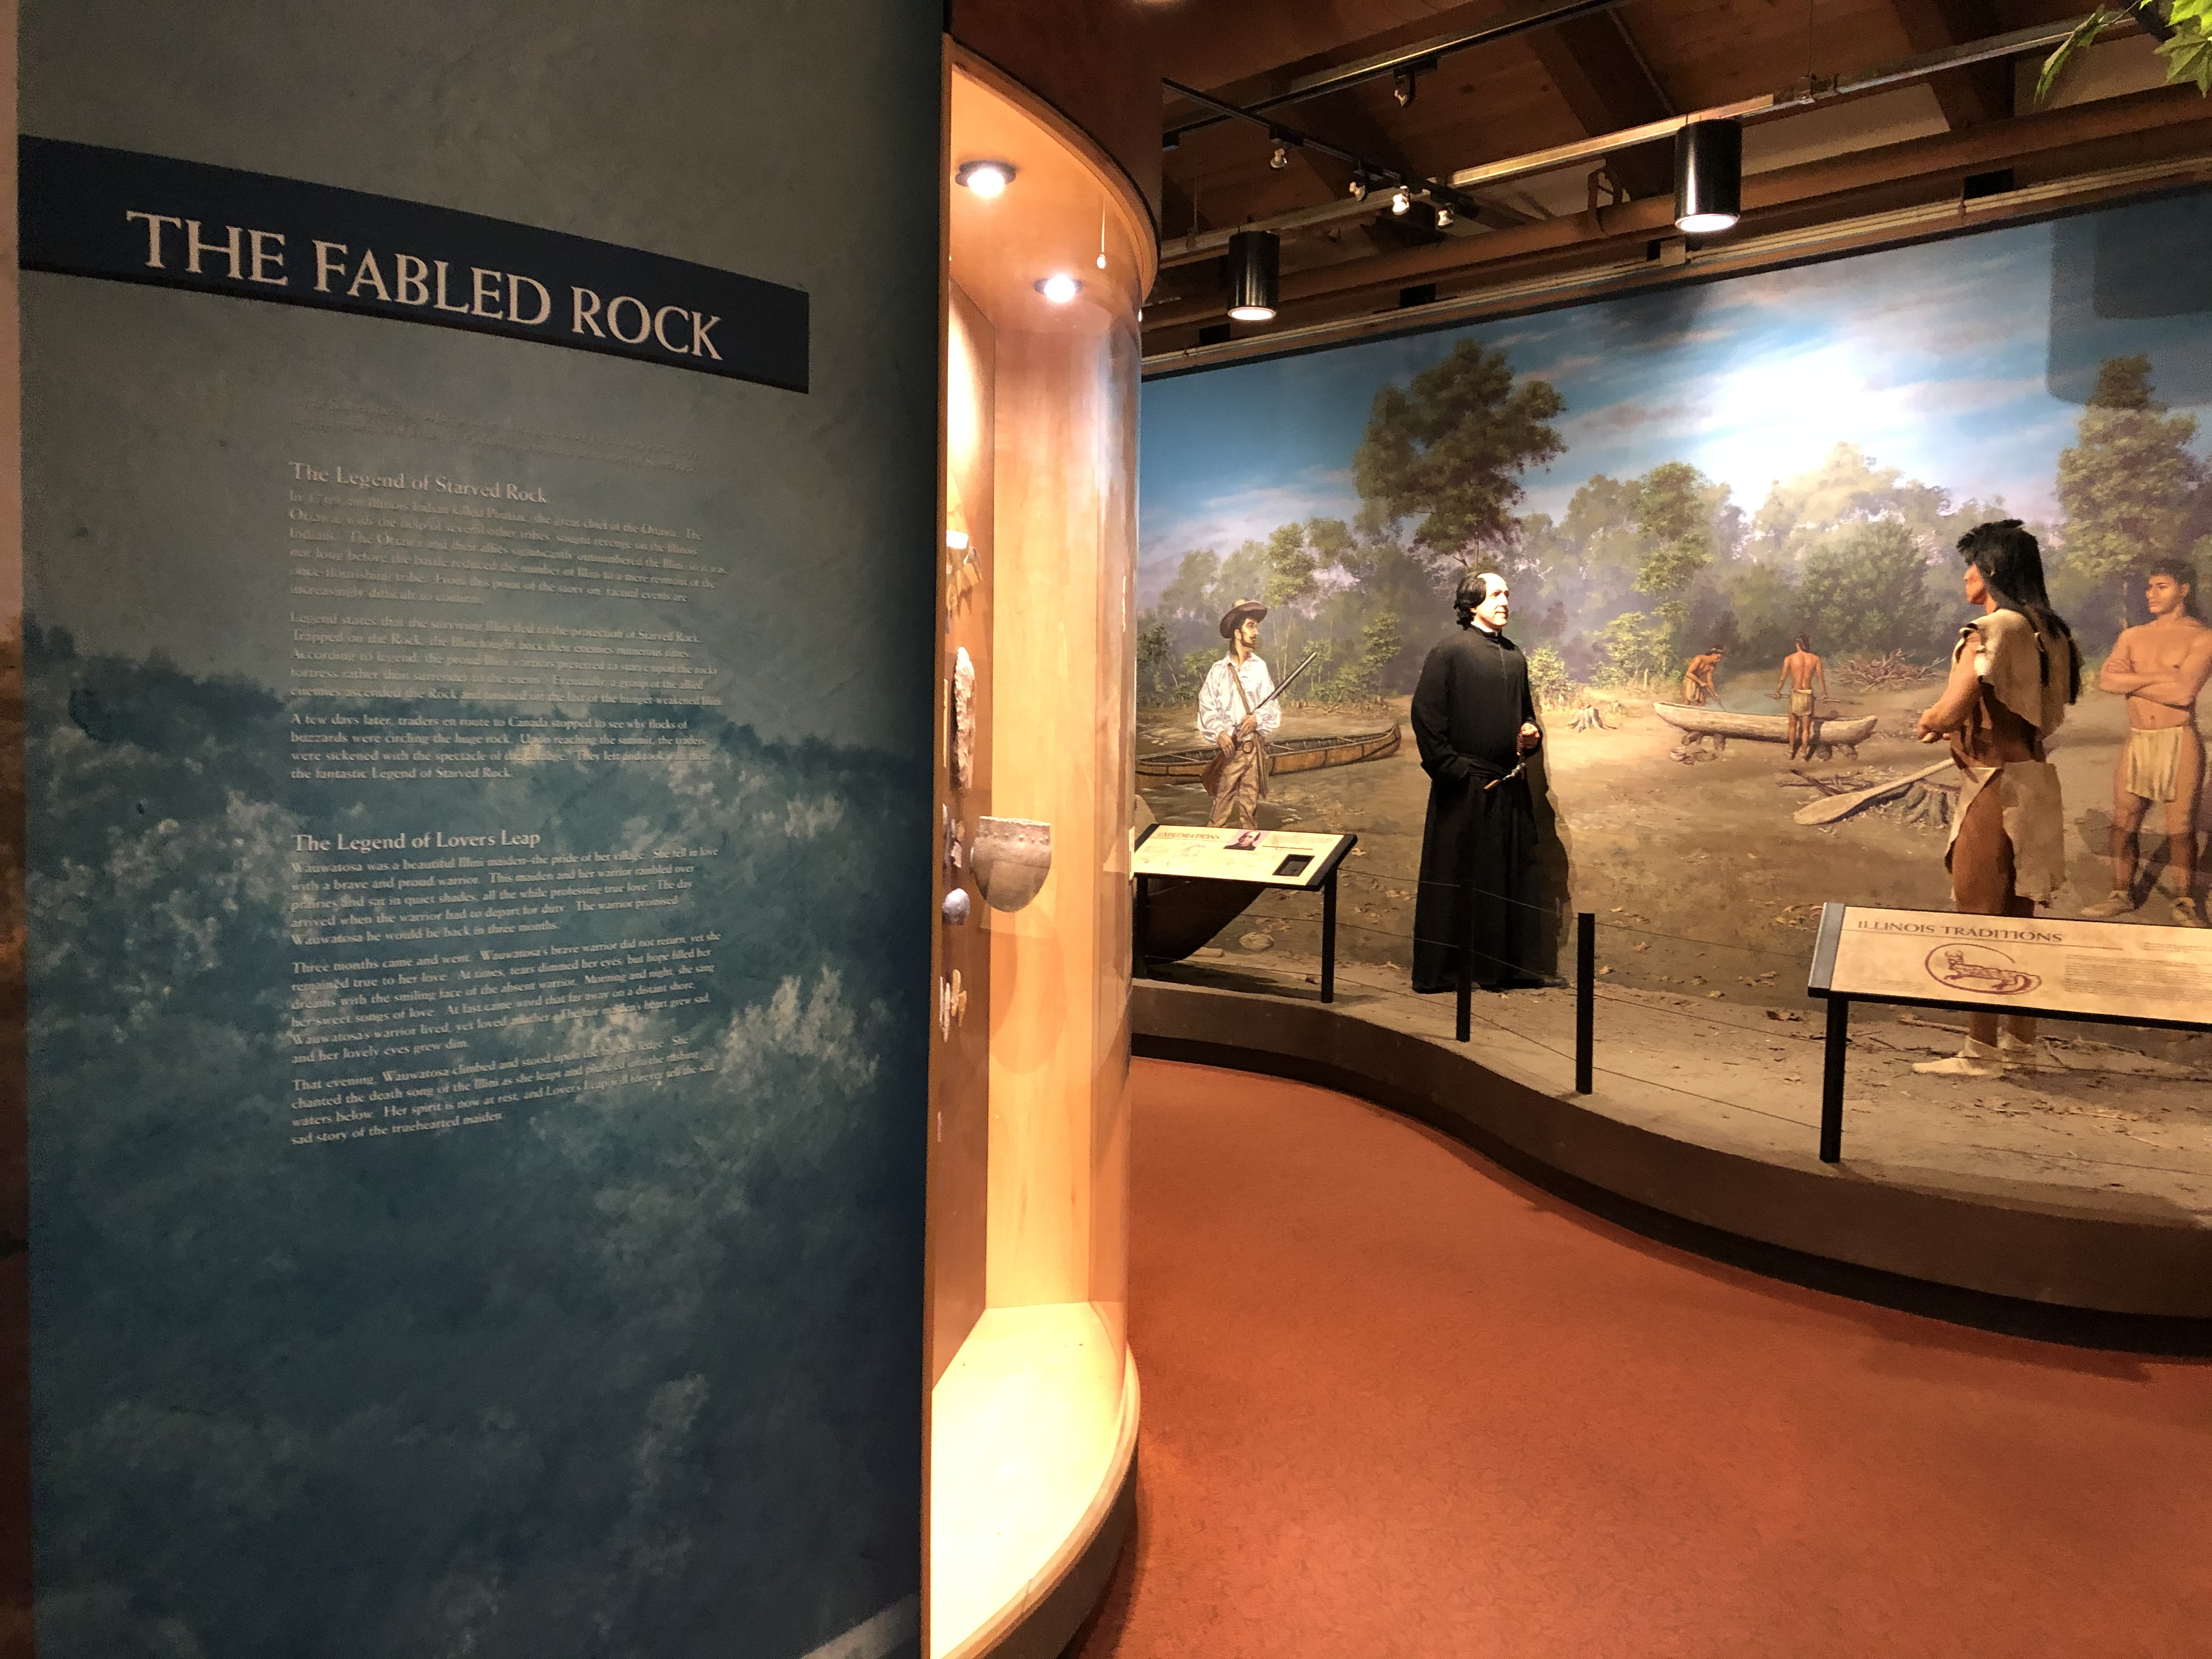 The visitor center has many displays about the history and legends of Starved Rock, as well as information about the native flora and fauna.